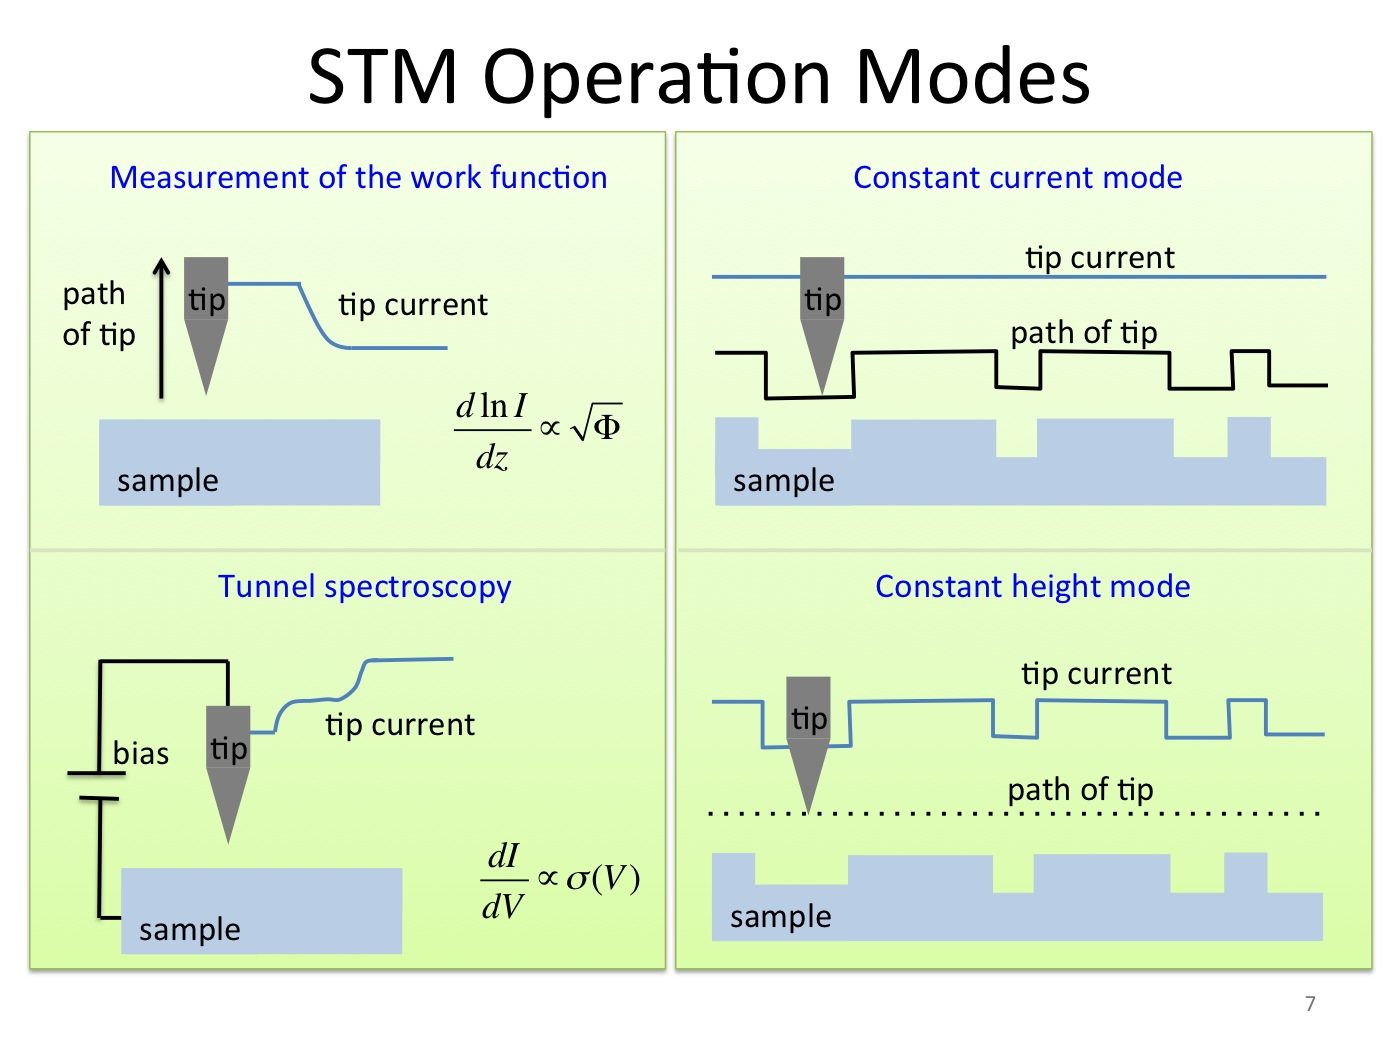 STM operation modes from Rose lecture